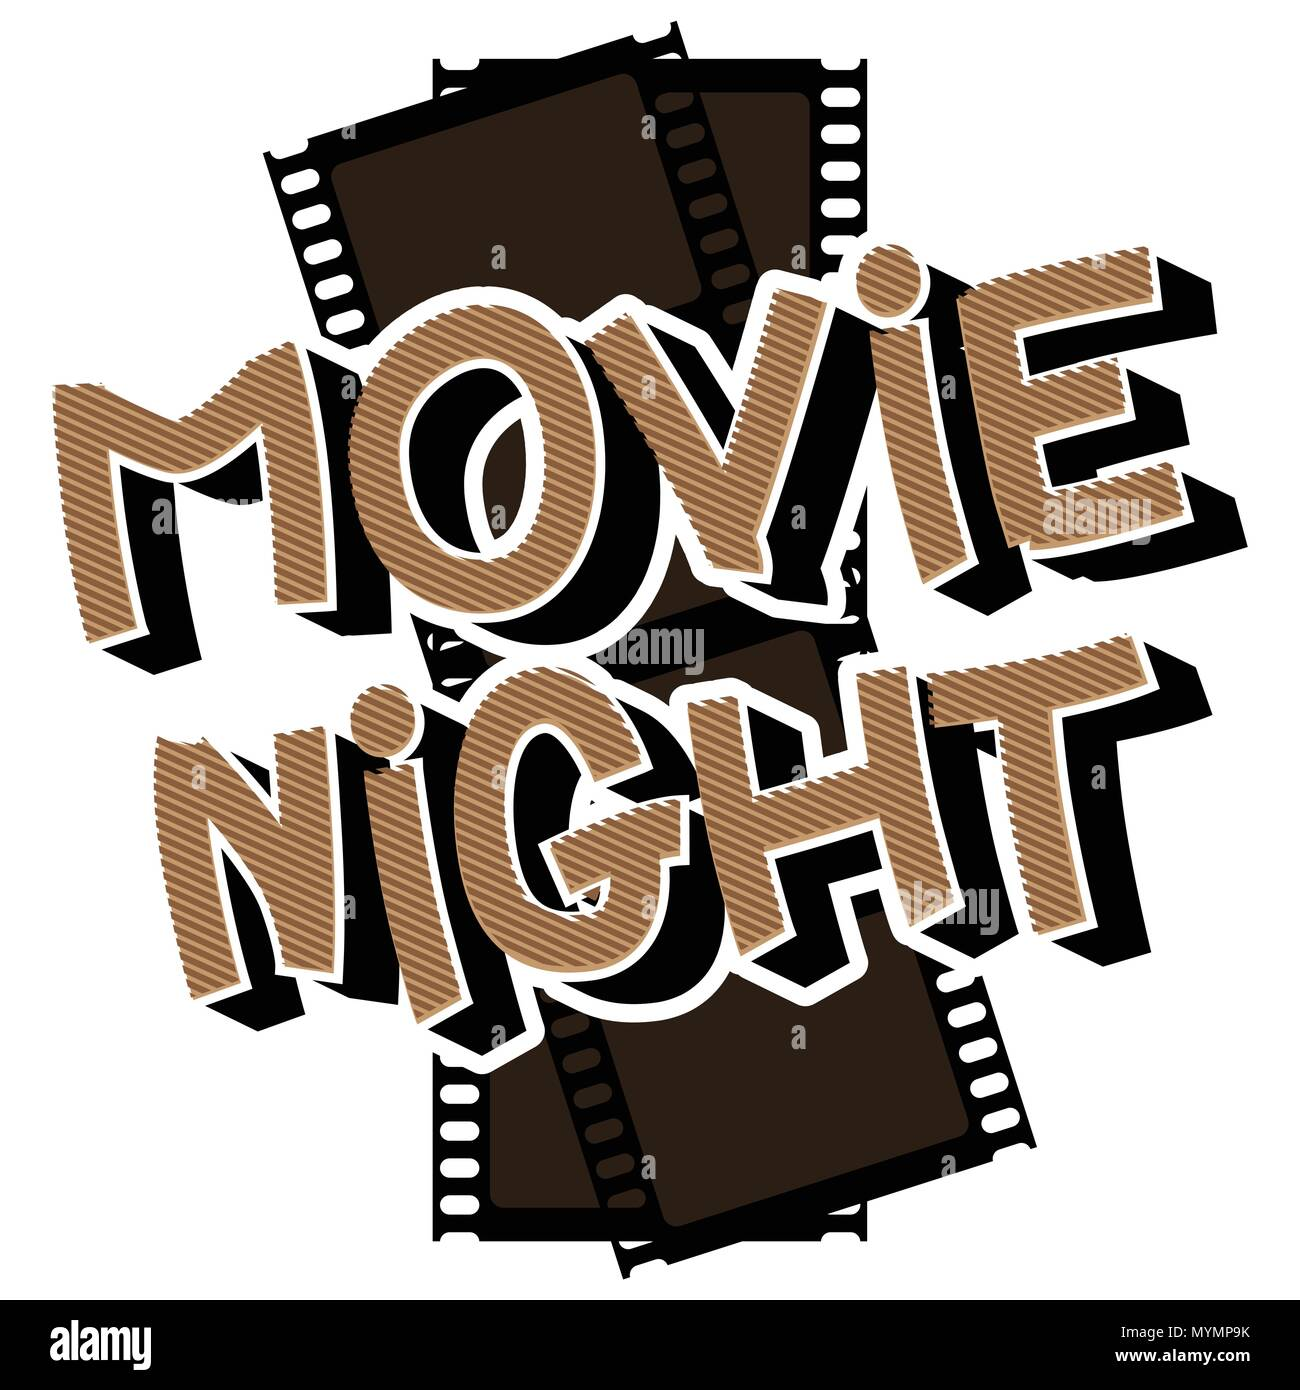 Movie Night - Comic book style word with film strip on the background. - Stock Image